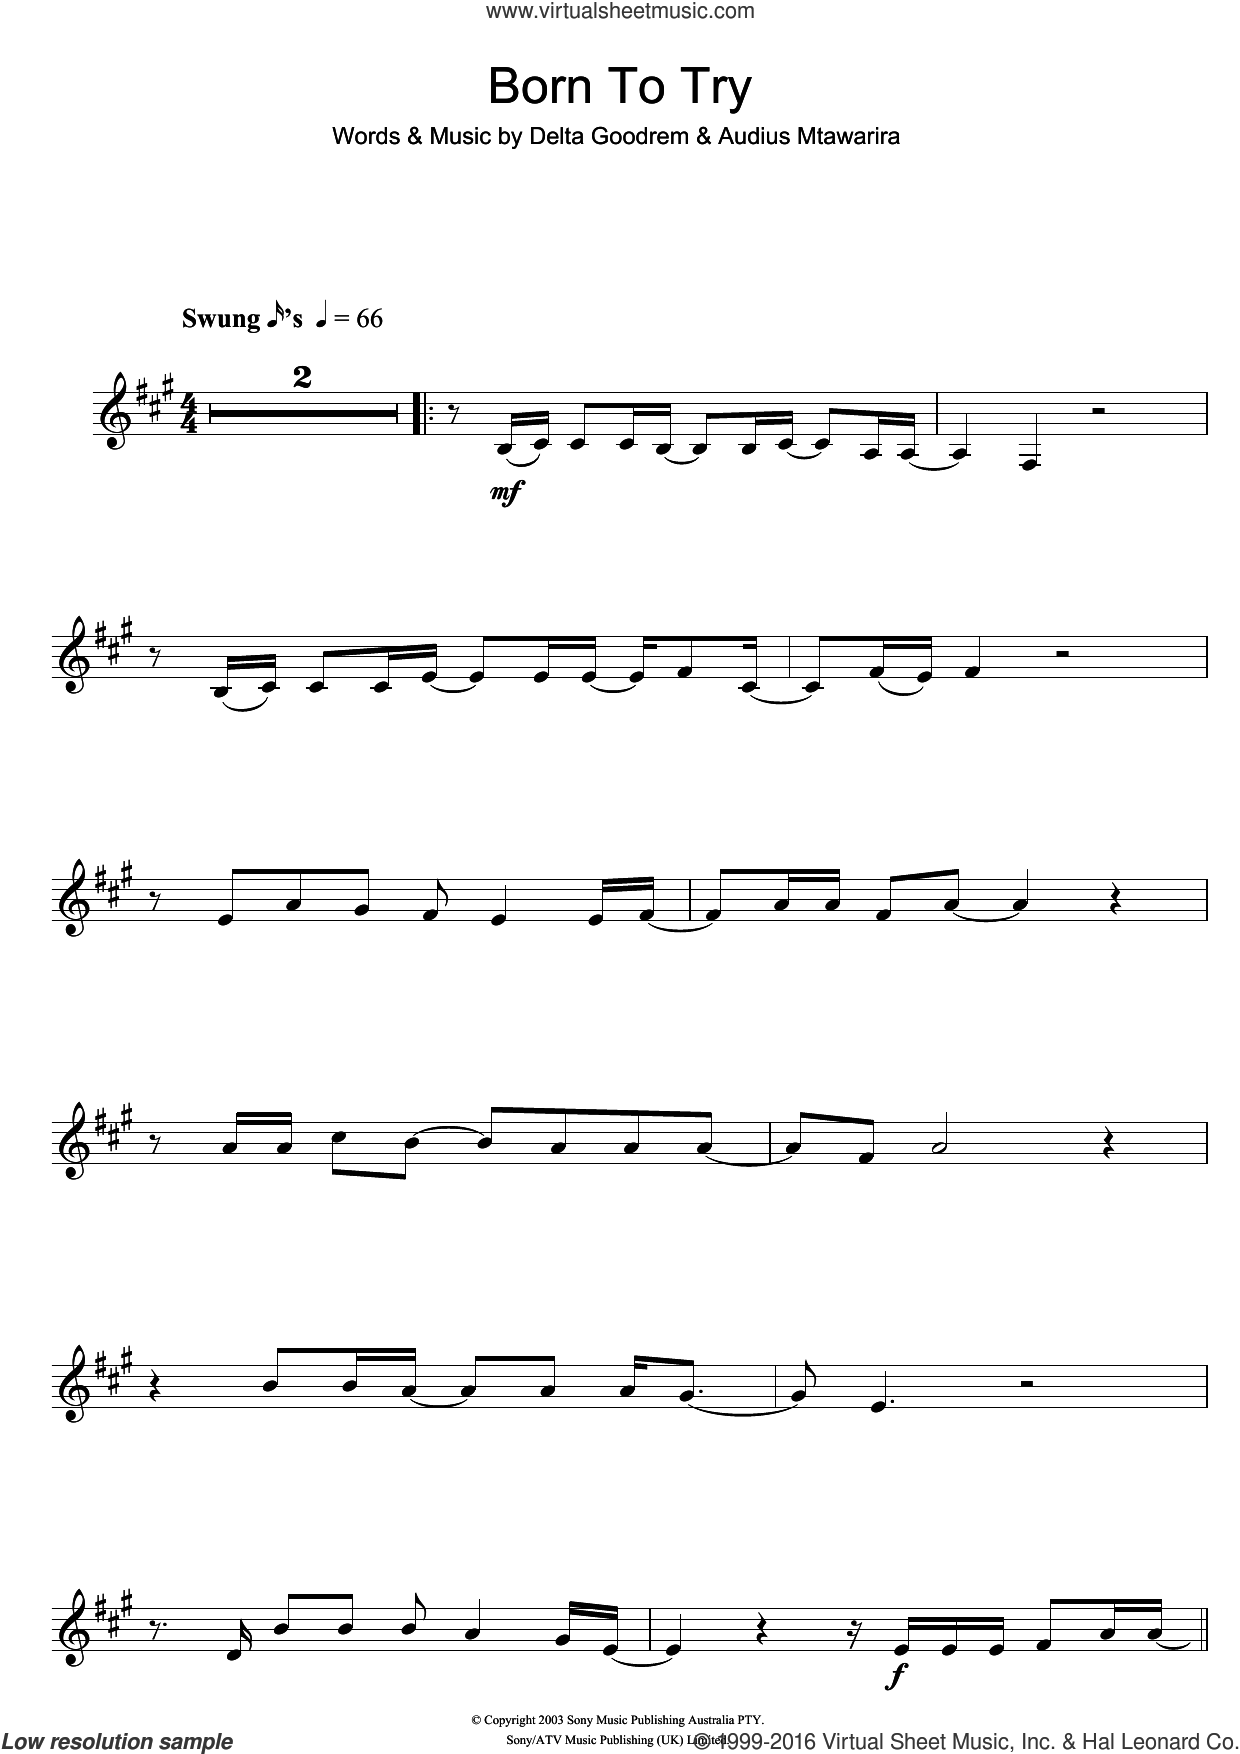 Born To Try sheet music for clarinet solo by Audius Mtawarira and Delta Goodrem. Score Image Preview.